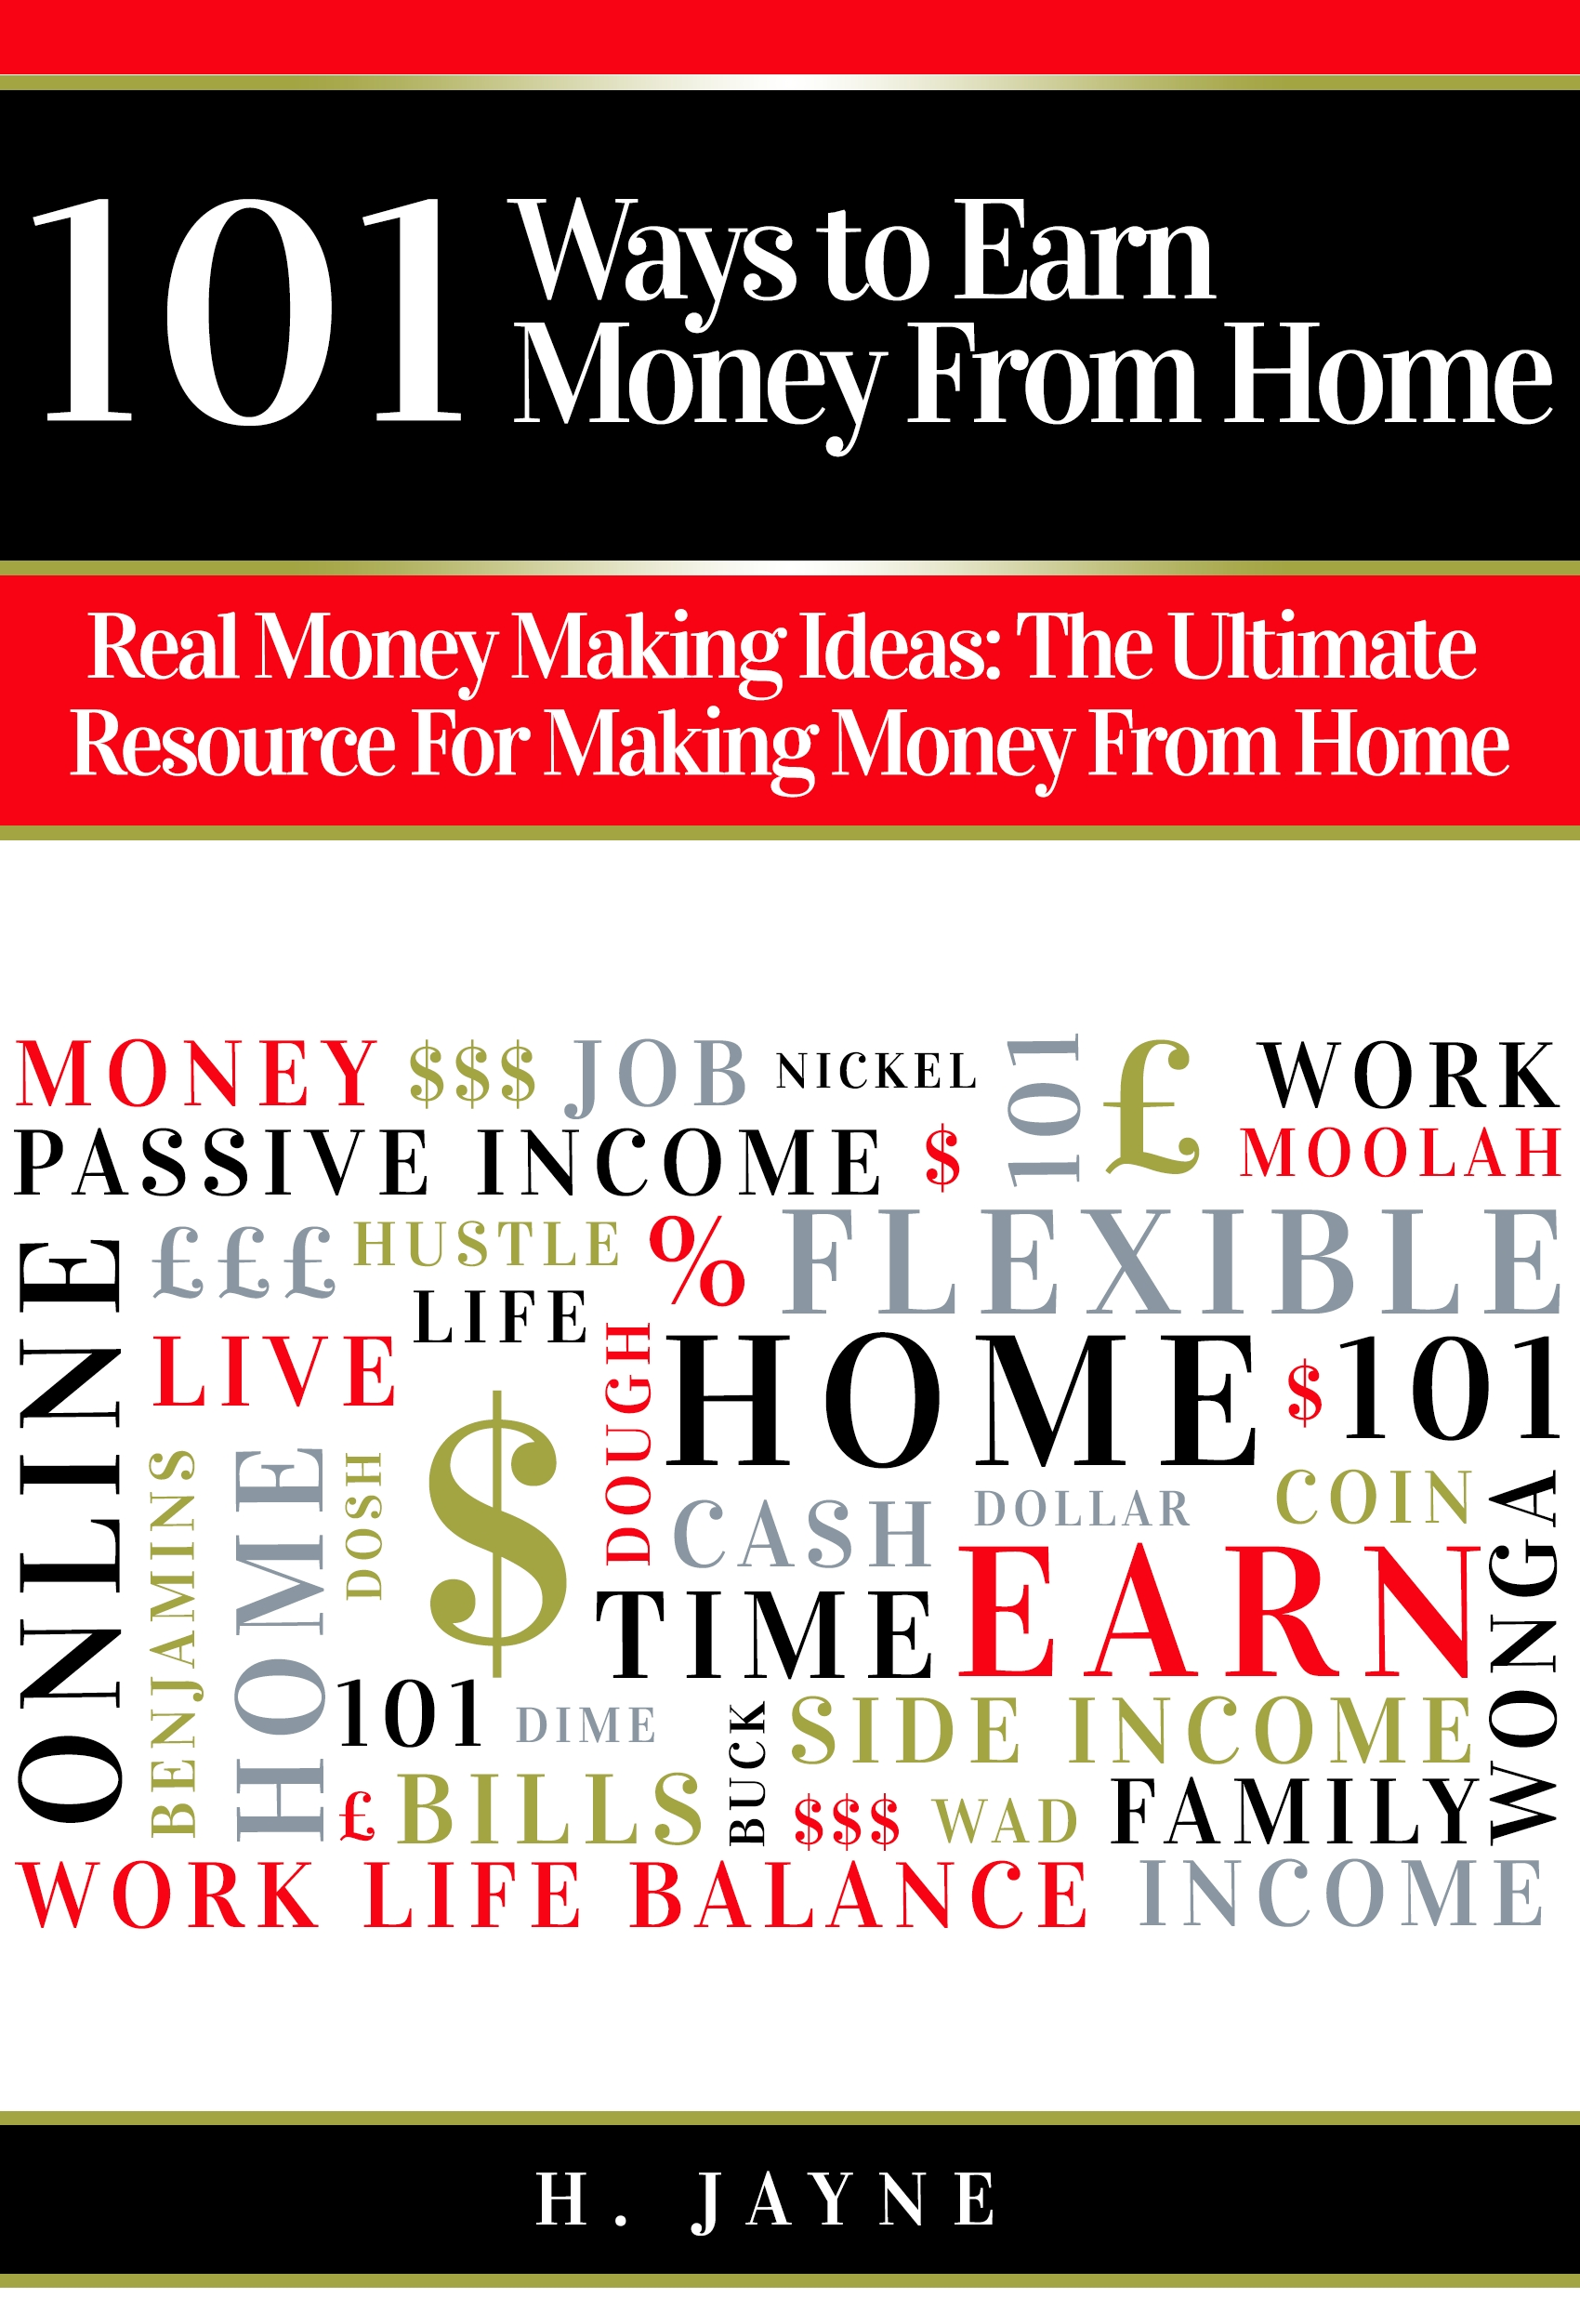 10 Fantastic Money Making Ideas From Home 101 ways to earn money from home new ebook launch 2 2020